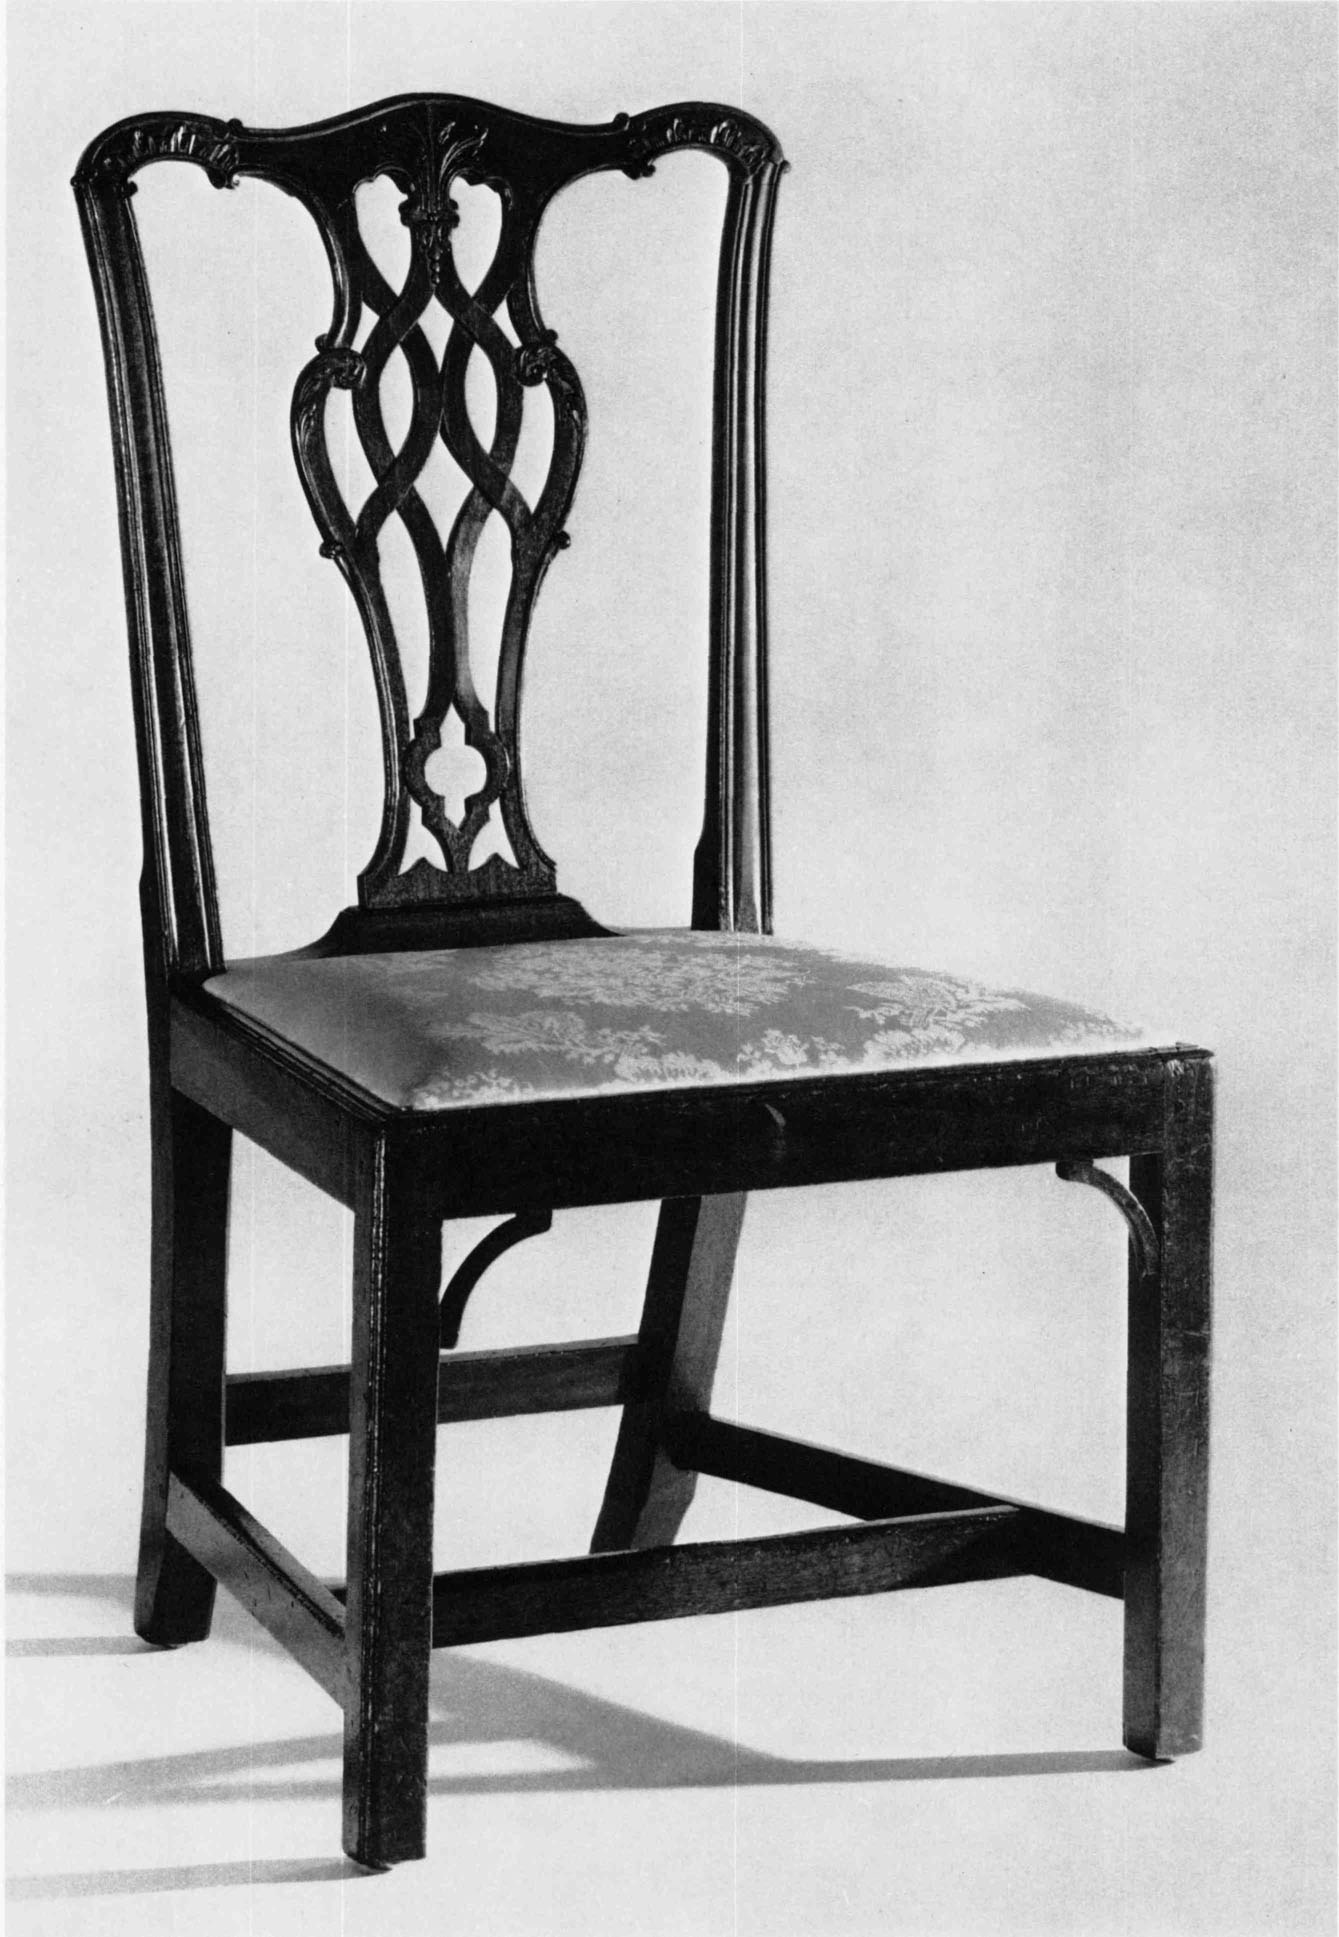 This israel sack american federal mahogany antique lolling arm chair - Side Chair Boston Area C 1760 1780 Mahogany H 36 Inches W 21 Inches D 18 Inches The Henry Francis Du Pont Winterthur Museum Splat A